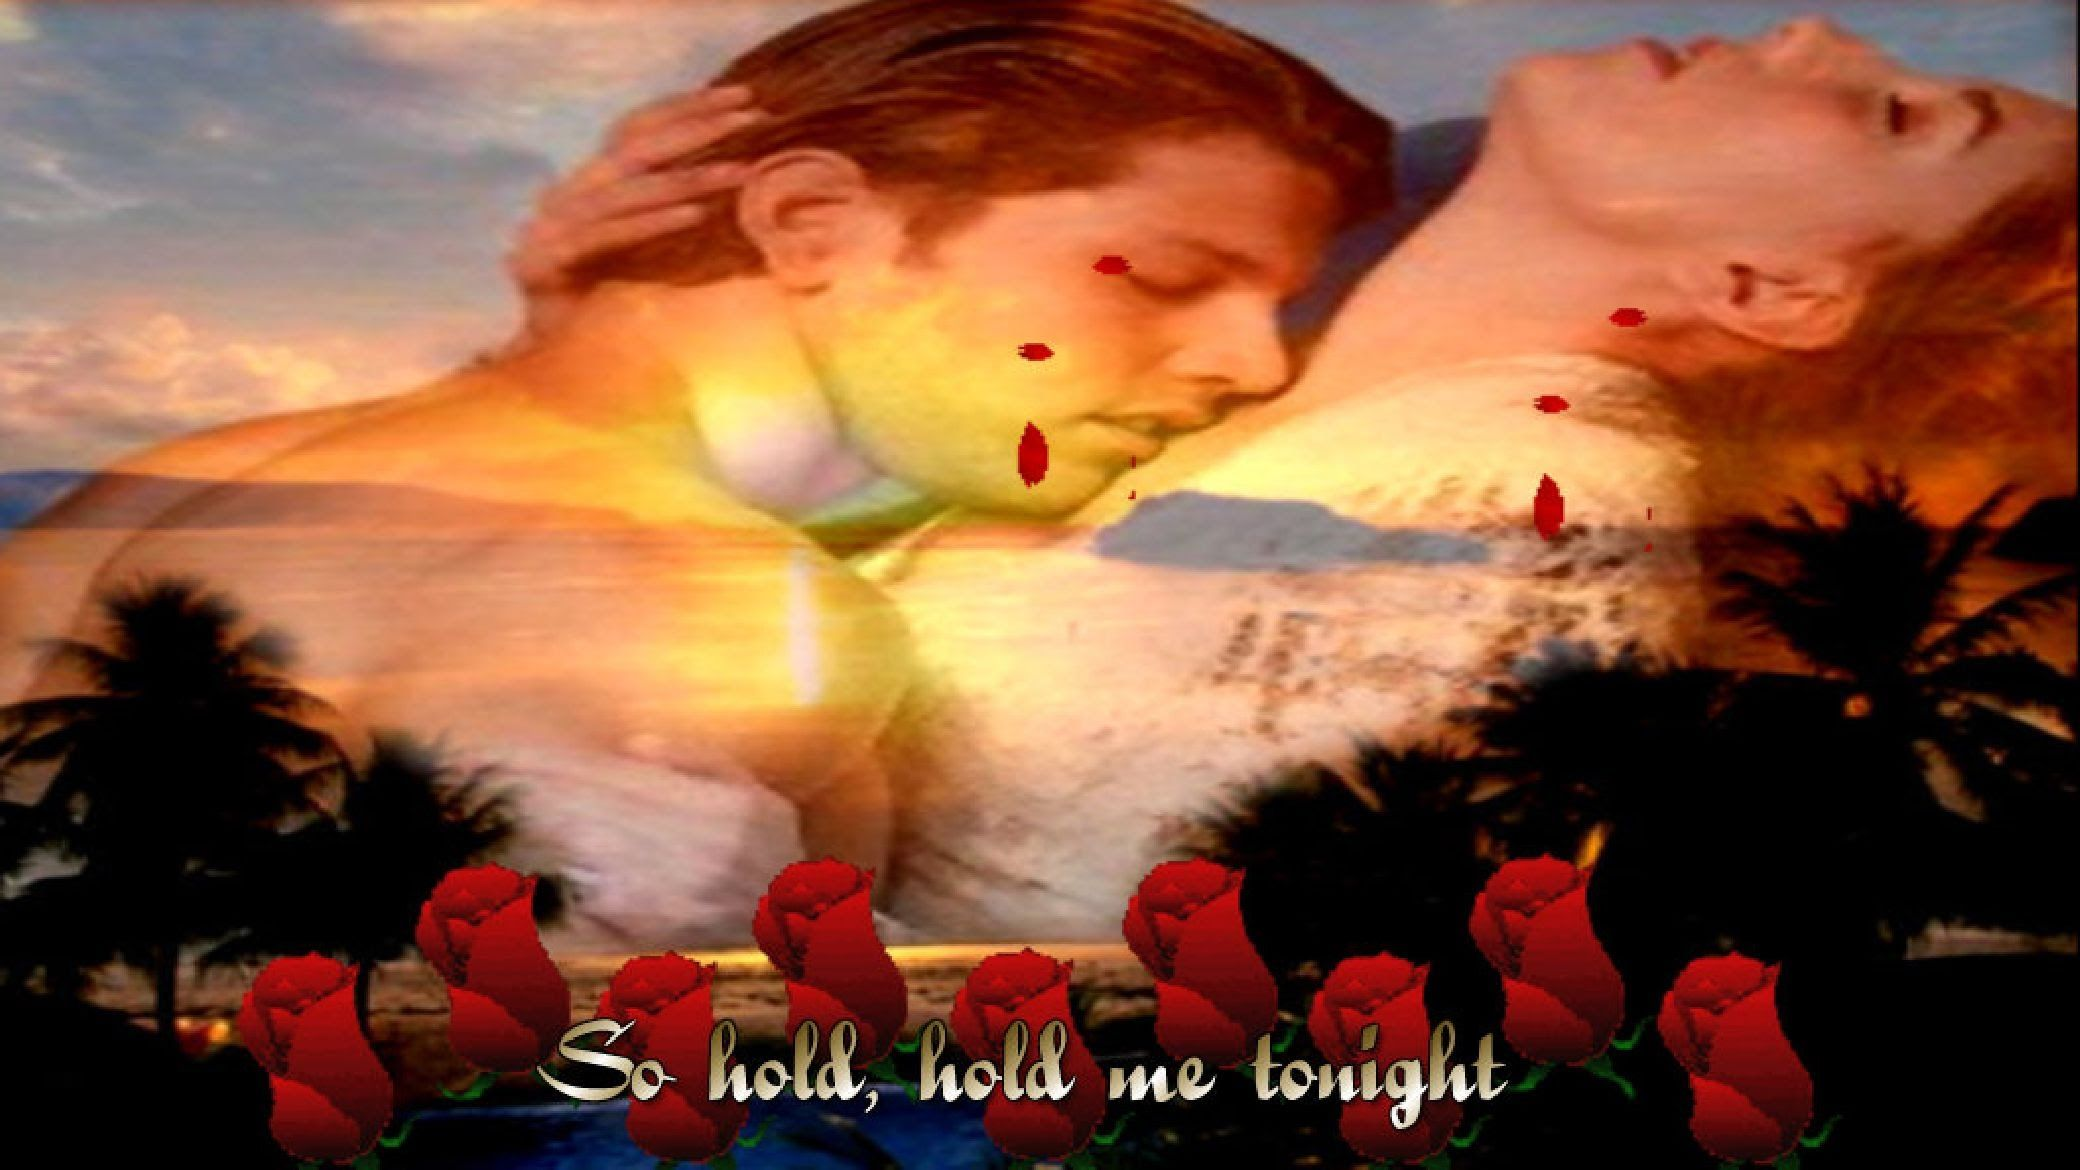 Rednex Hold Me For A While Lyrics Hold On